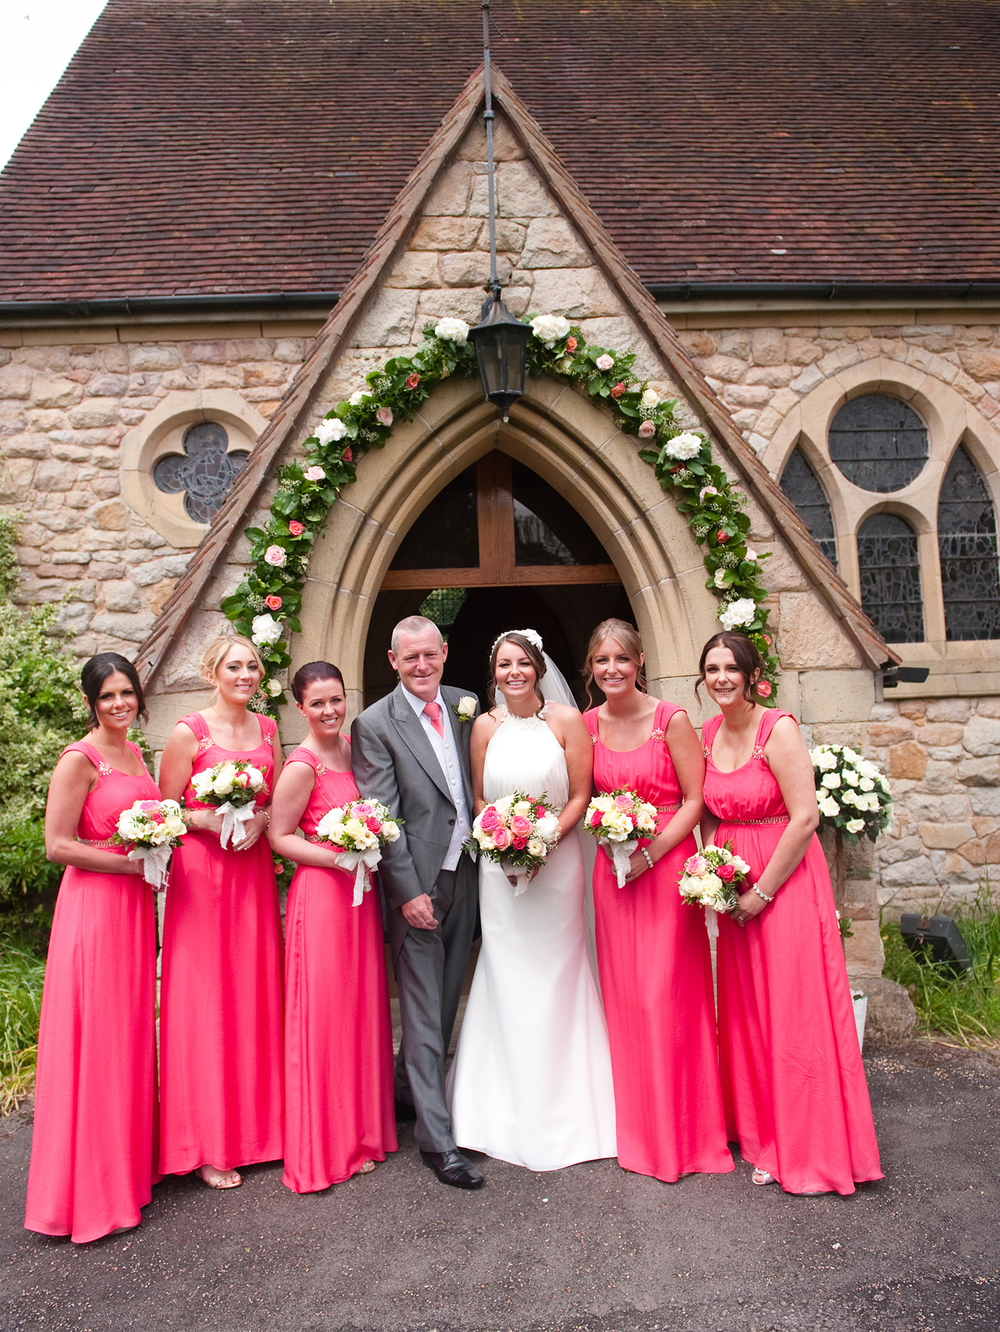 rookery-hall-wedding-weekday-wedding-photos-pink-wedding-details-cheshire-wedding (14)